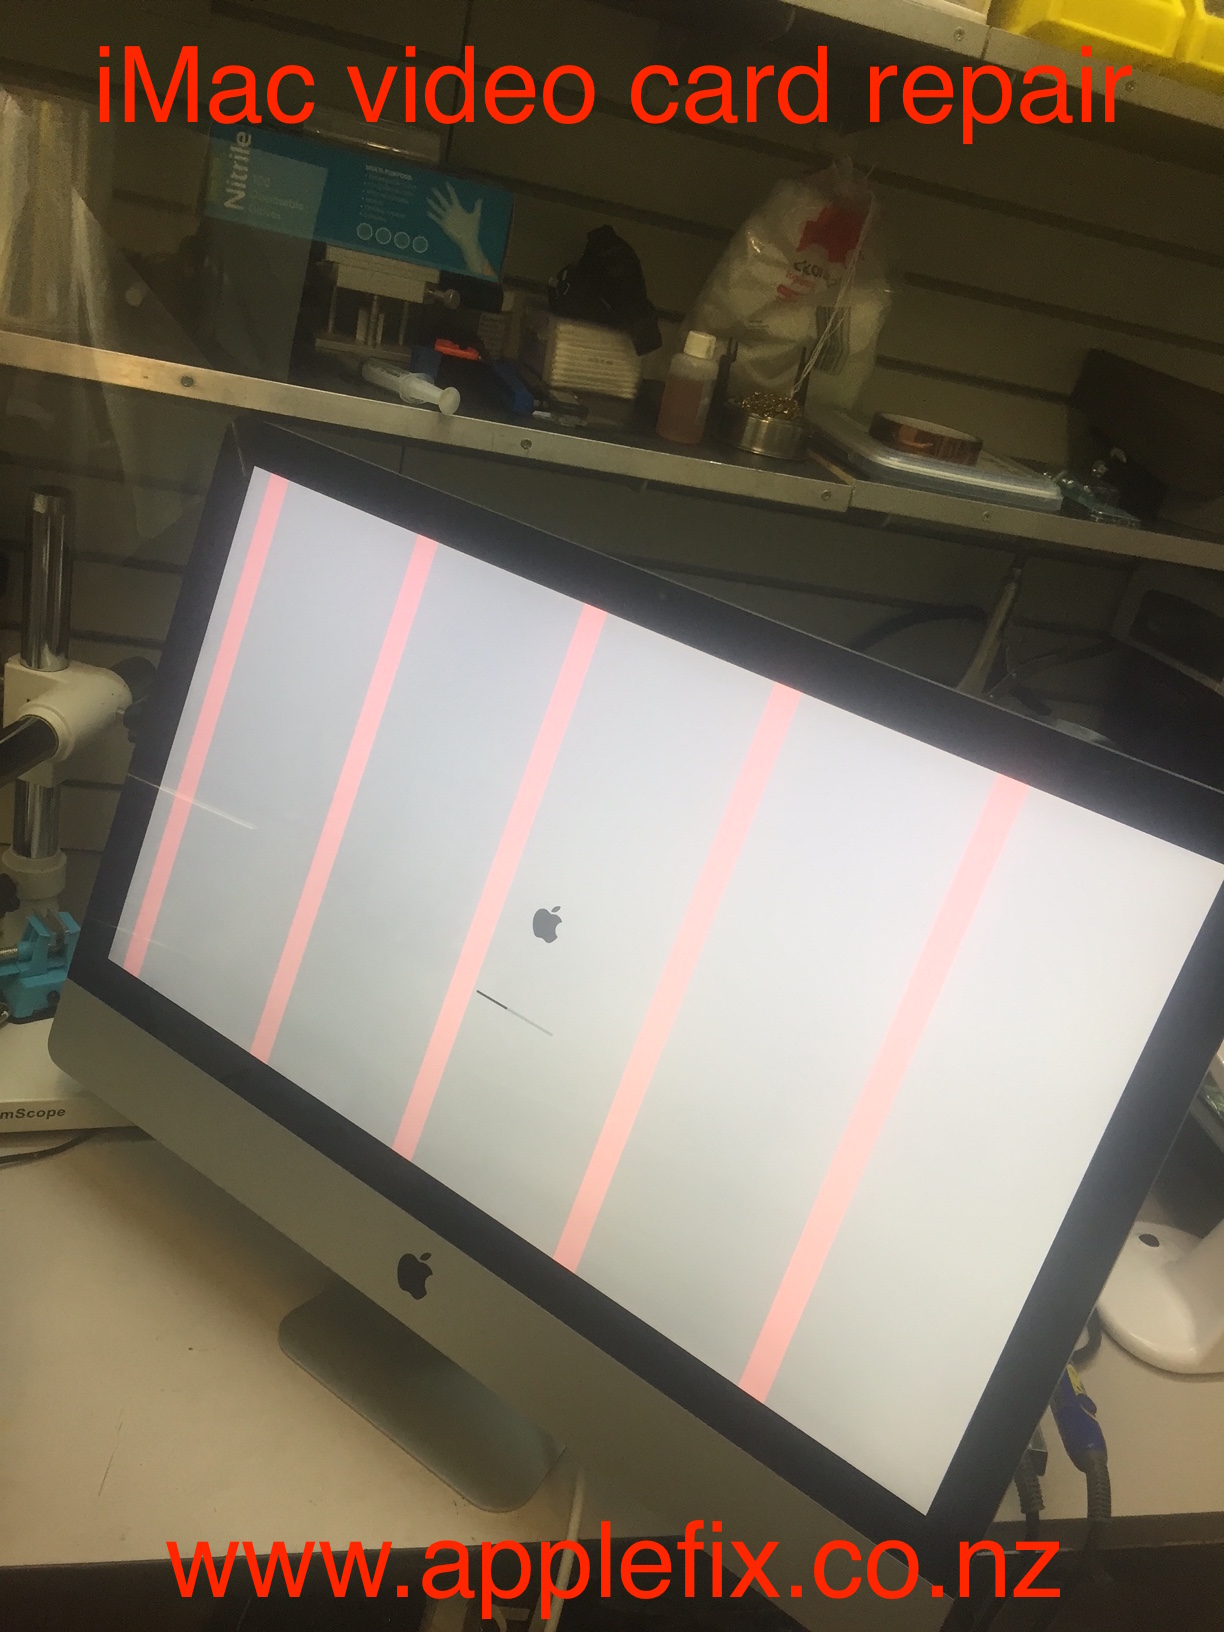 iMac video card repair